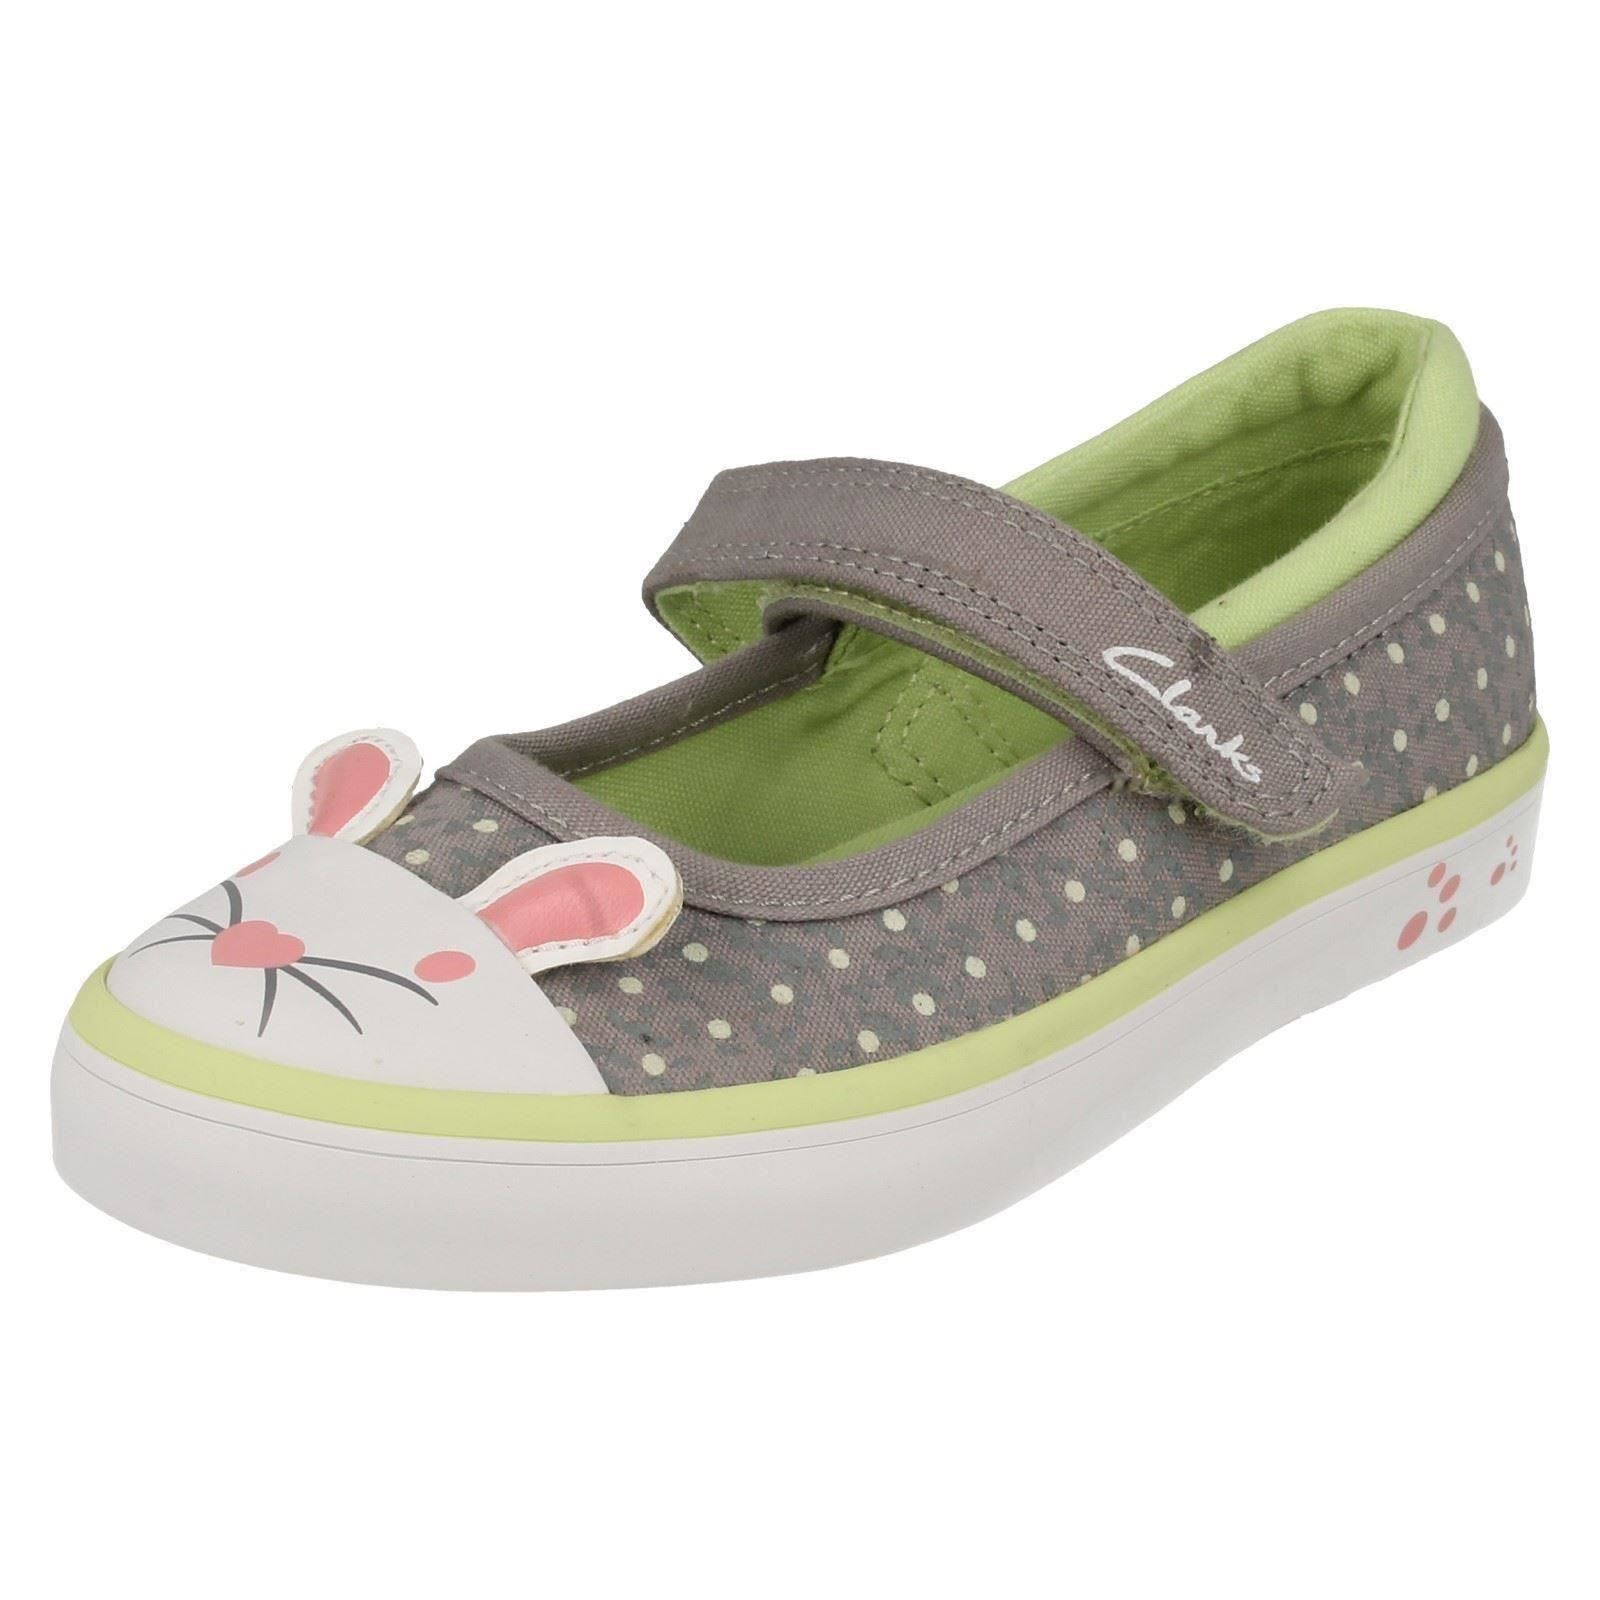 'Junior Girls Clarks' Rounded Toe Riptape Strap Canvas Pumps - Gracie Tale